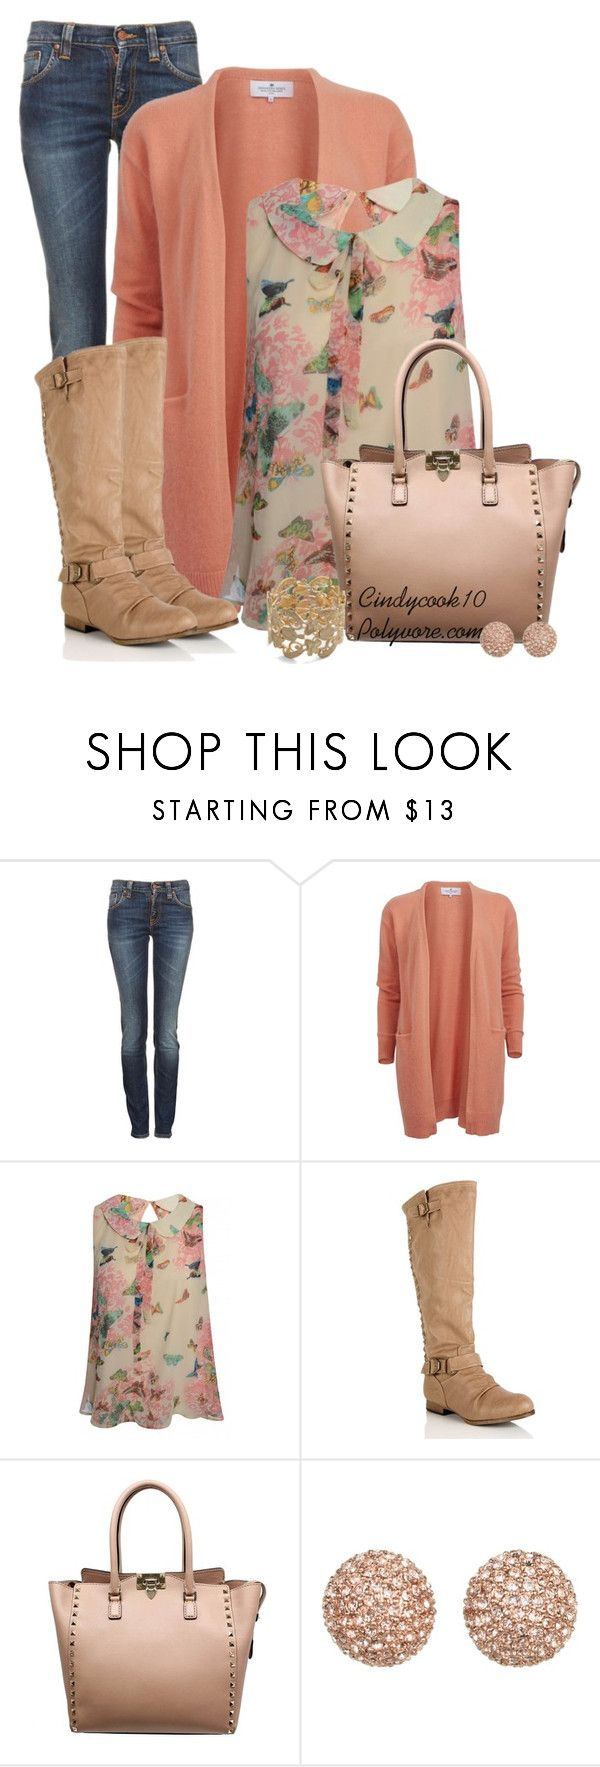 """Sleeveless Blouse"" by cindycook10 ❤ liked on Polyvore featuring Nudie Jeans Co., Valentino and Michael Kors"